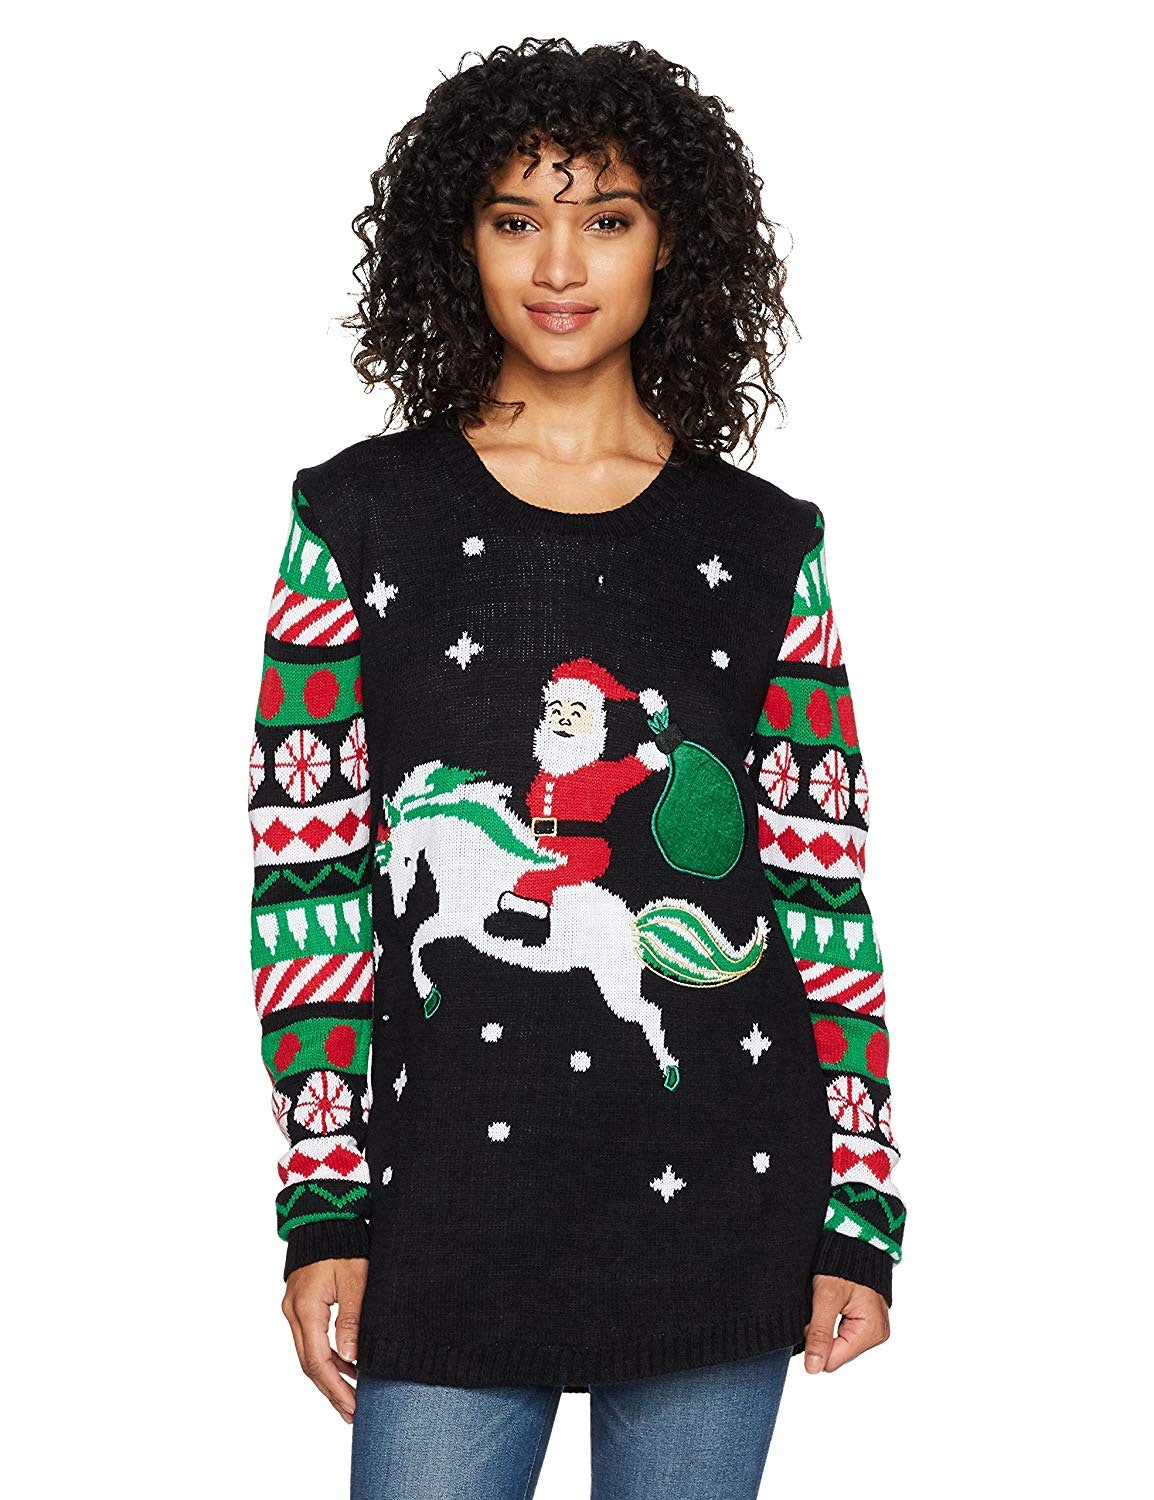 092564175d1 The 32 Best Ugly Christmas Sweaters